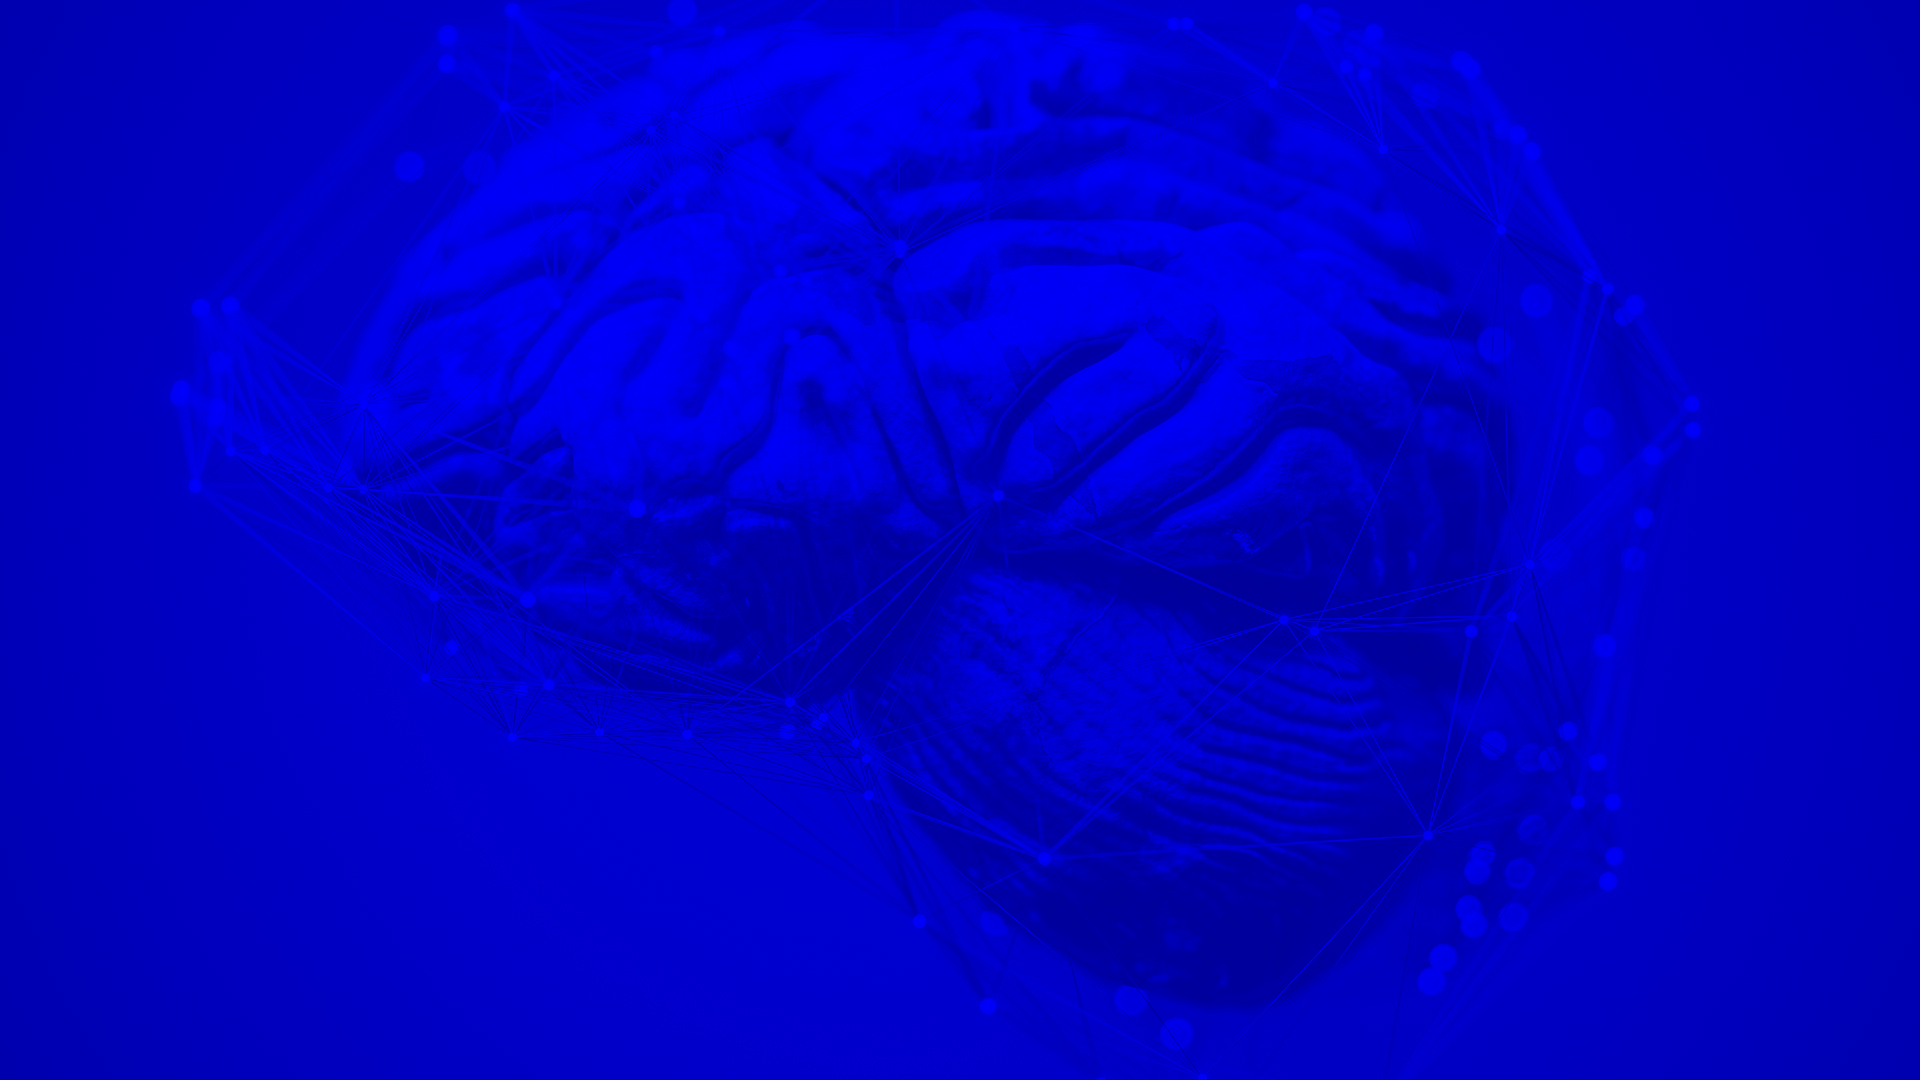 Brain surrounded by lines and points with blue filter